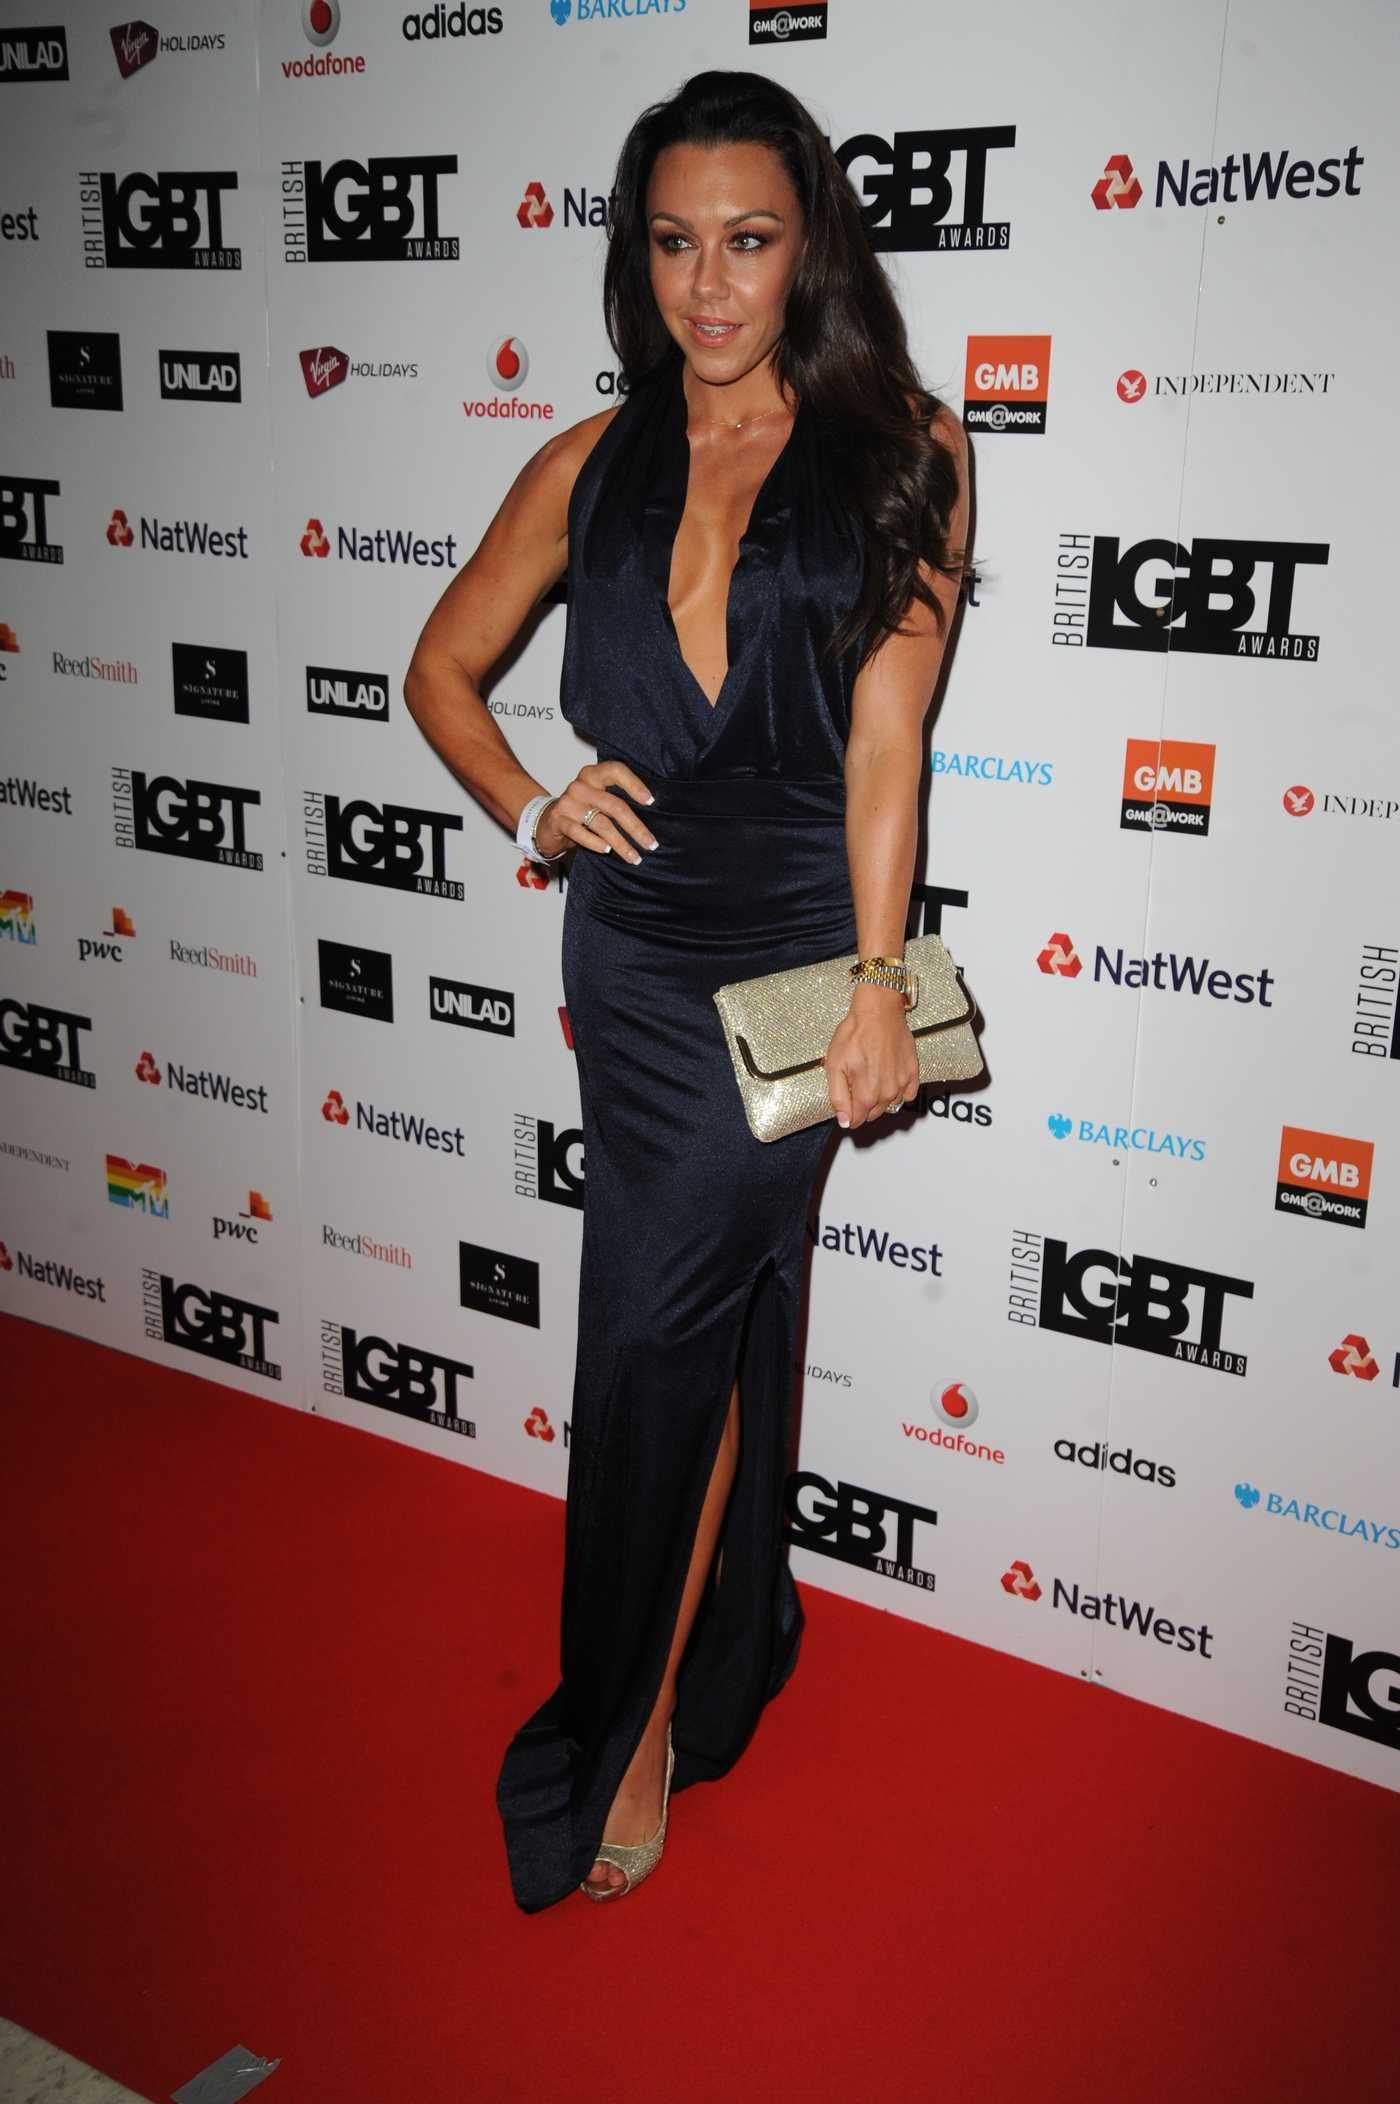 Michelle Heaton at the 2017 British LGBT Awards in London 05/12/2017